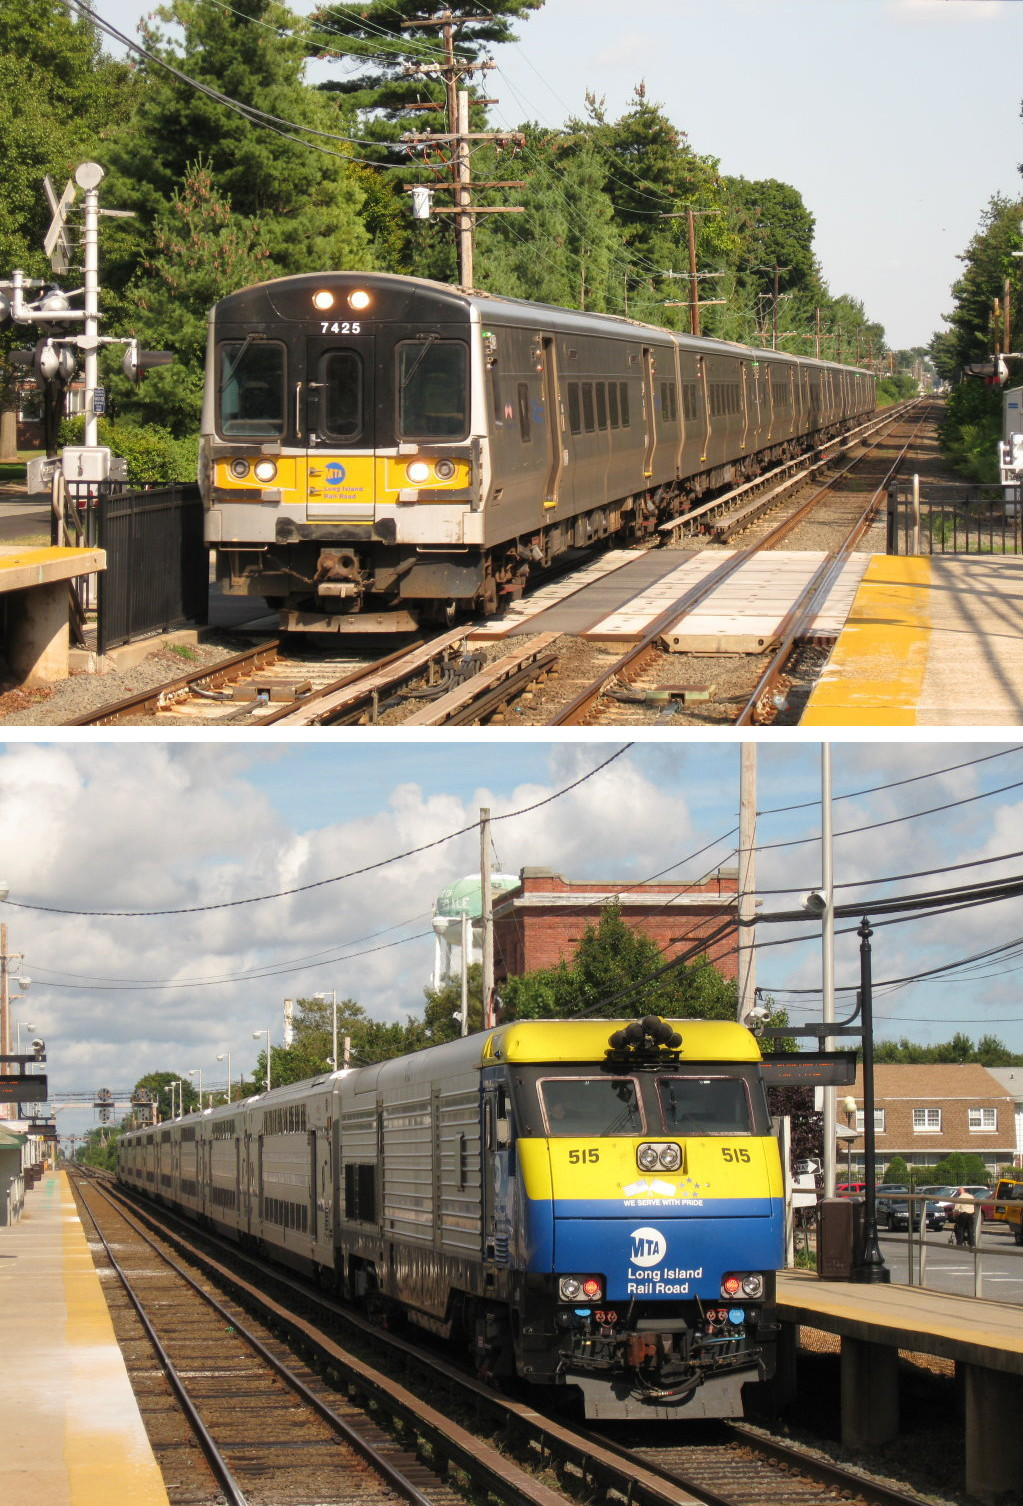 electric commuter train or commuter rail tourism essay A full-scale feasibility study of commuter rail service between ann arbor and howell is now underway and community meetings are planned to.